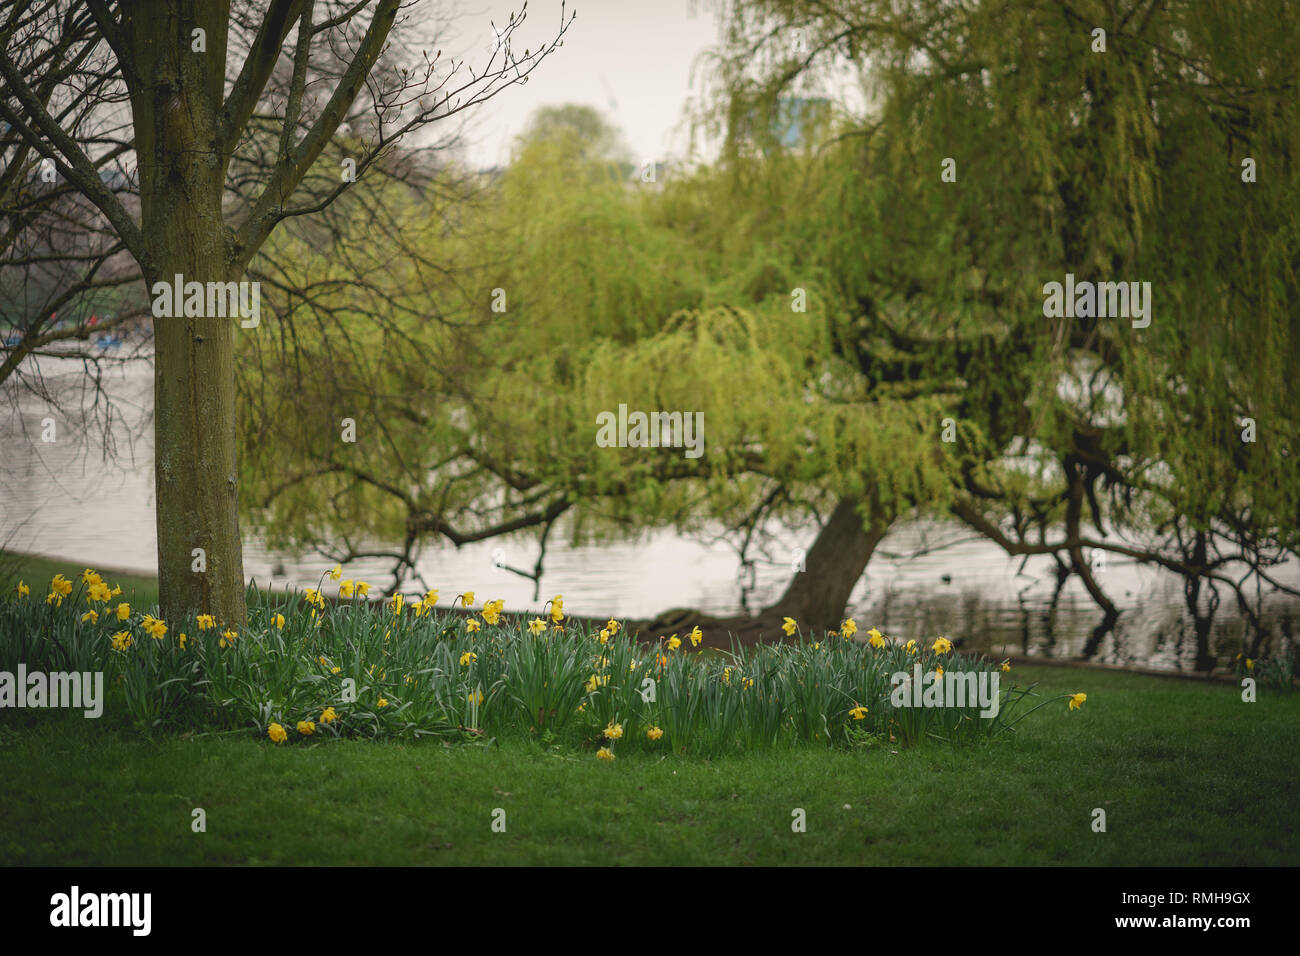 Yellow flowers and trees on the edge of a lake in a park in London. Landscape format. - Stock Image